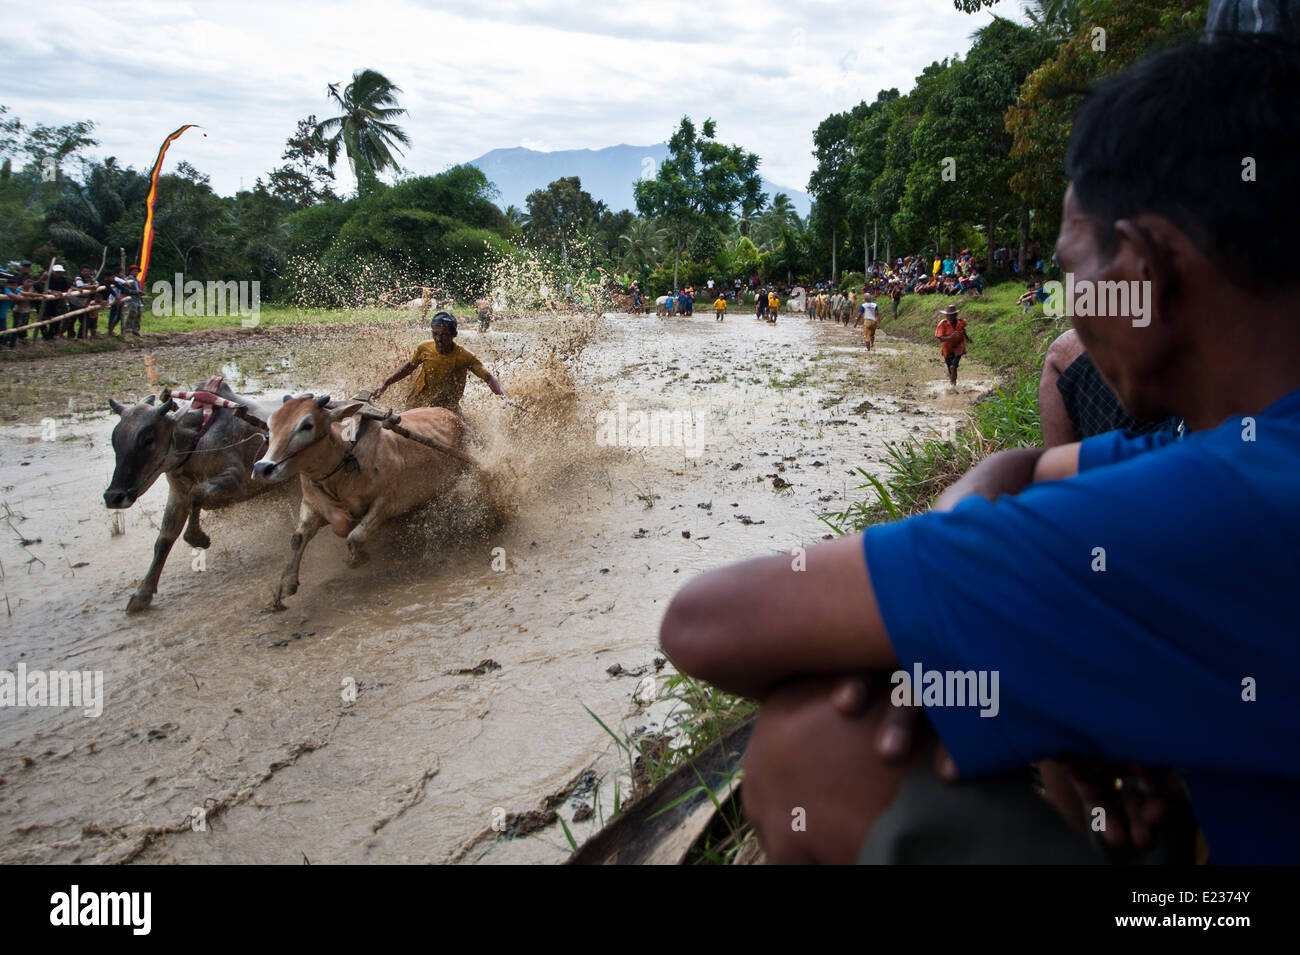 West Sumatra, Indonesia. 14th June, 2014. People watch a jockey spurring cattle during the Pacu Jawi in the field - Stock Image